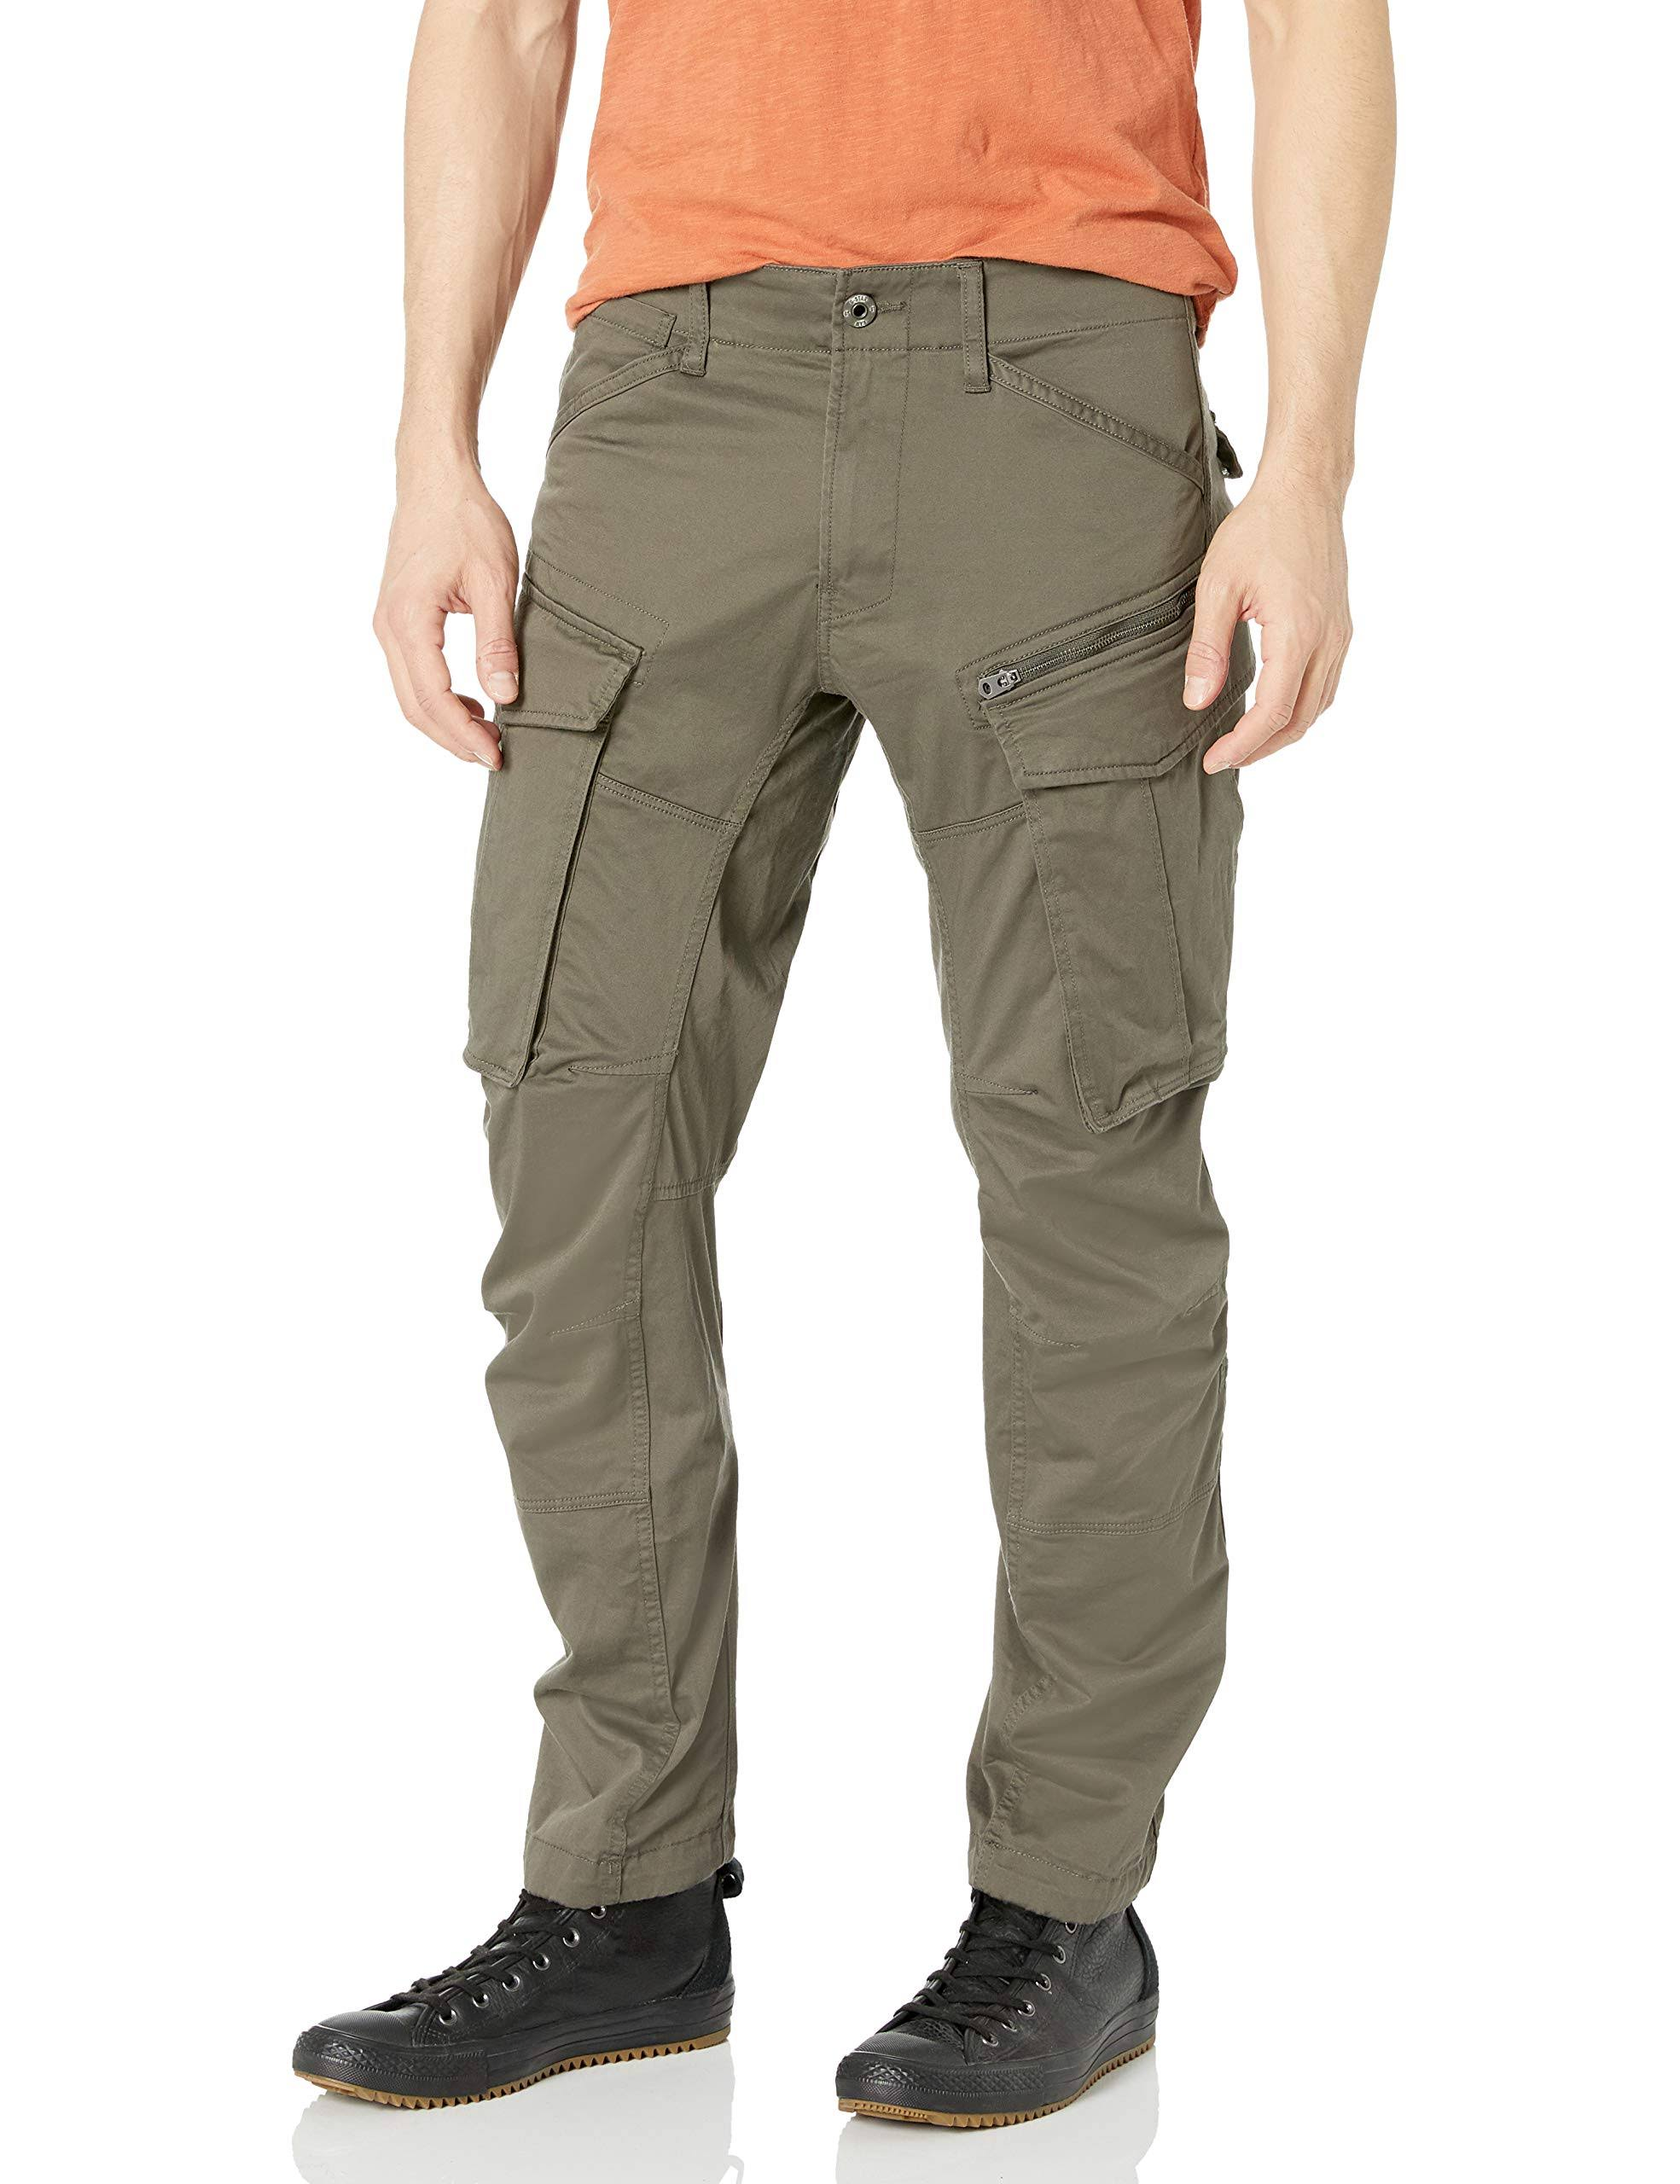 G-Star Raw Men's Rovic Zip 3D Straight Tapered Trousers